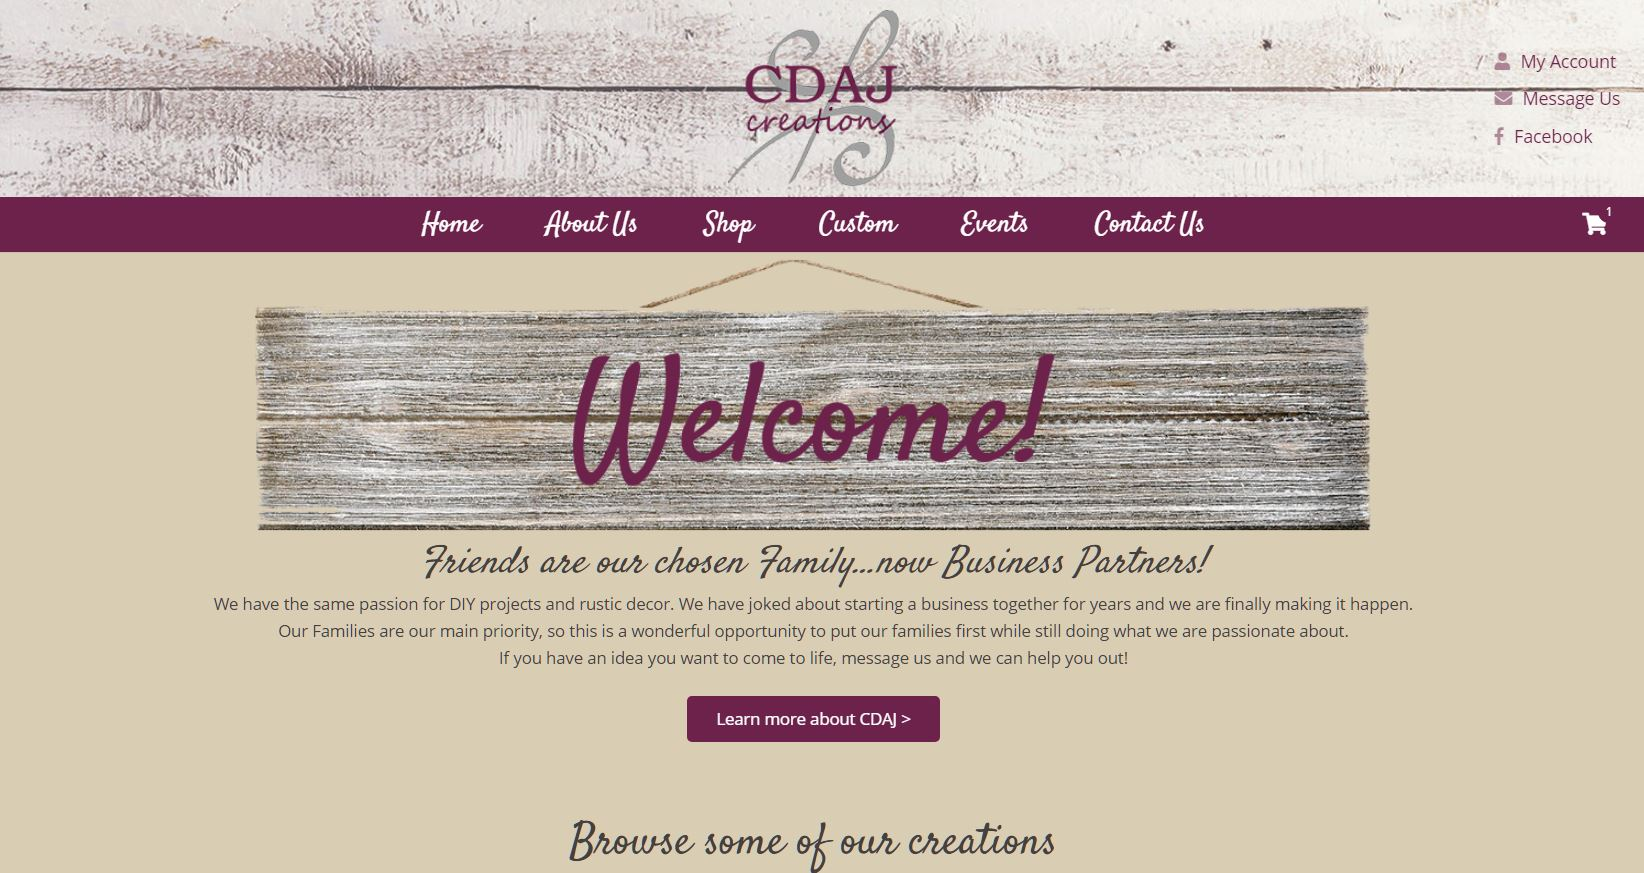 CDAJ Creations Website